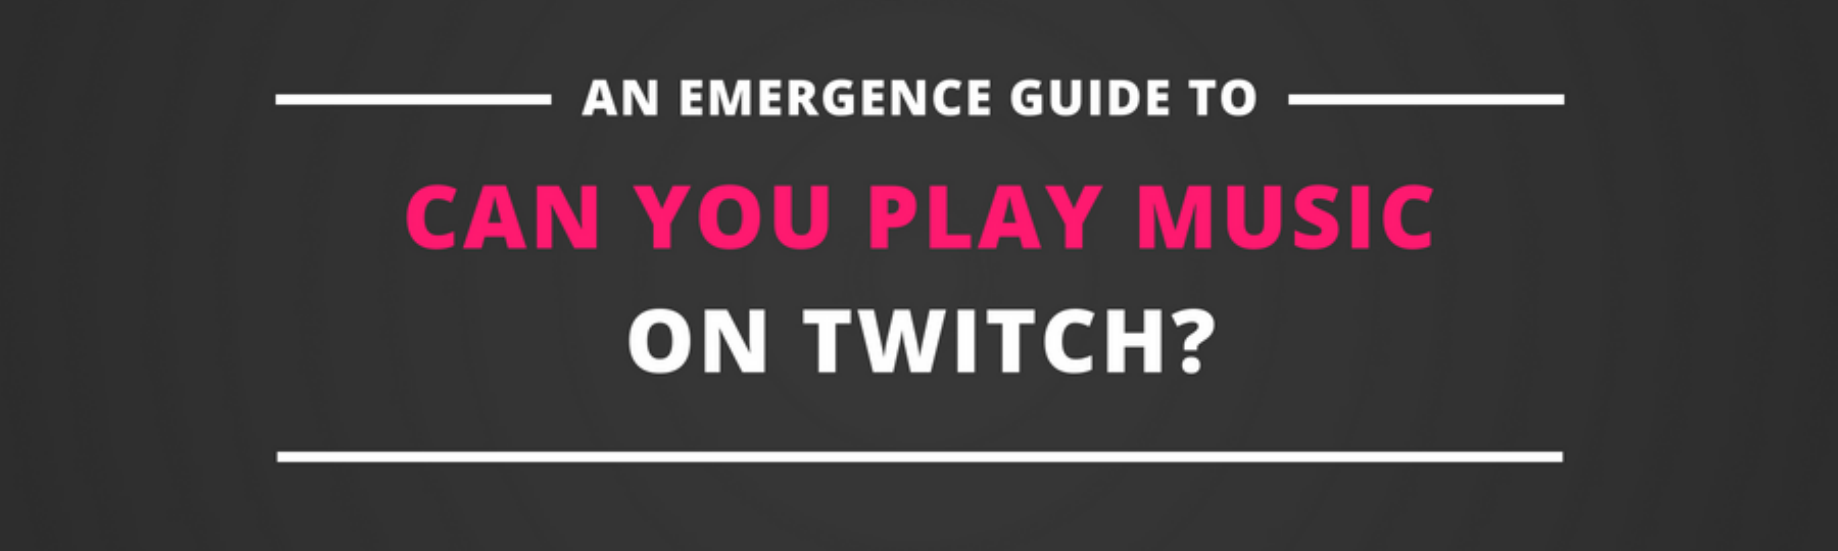 Playing Music on Twitch: What Are The Rules? - The Emergence - Medium